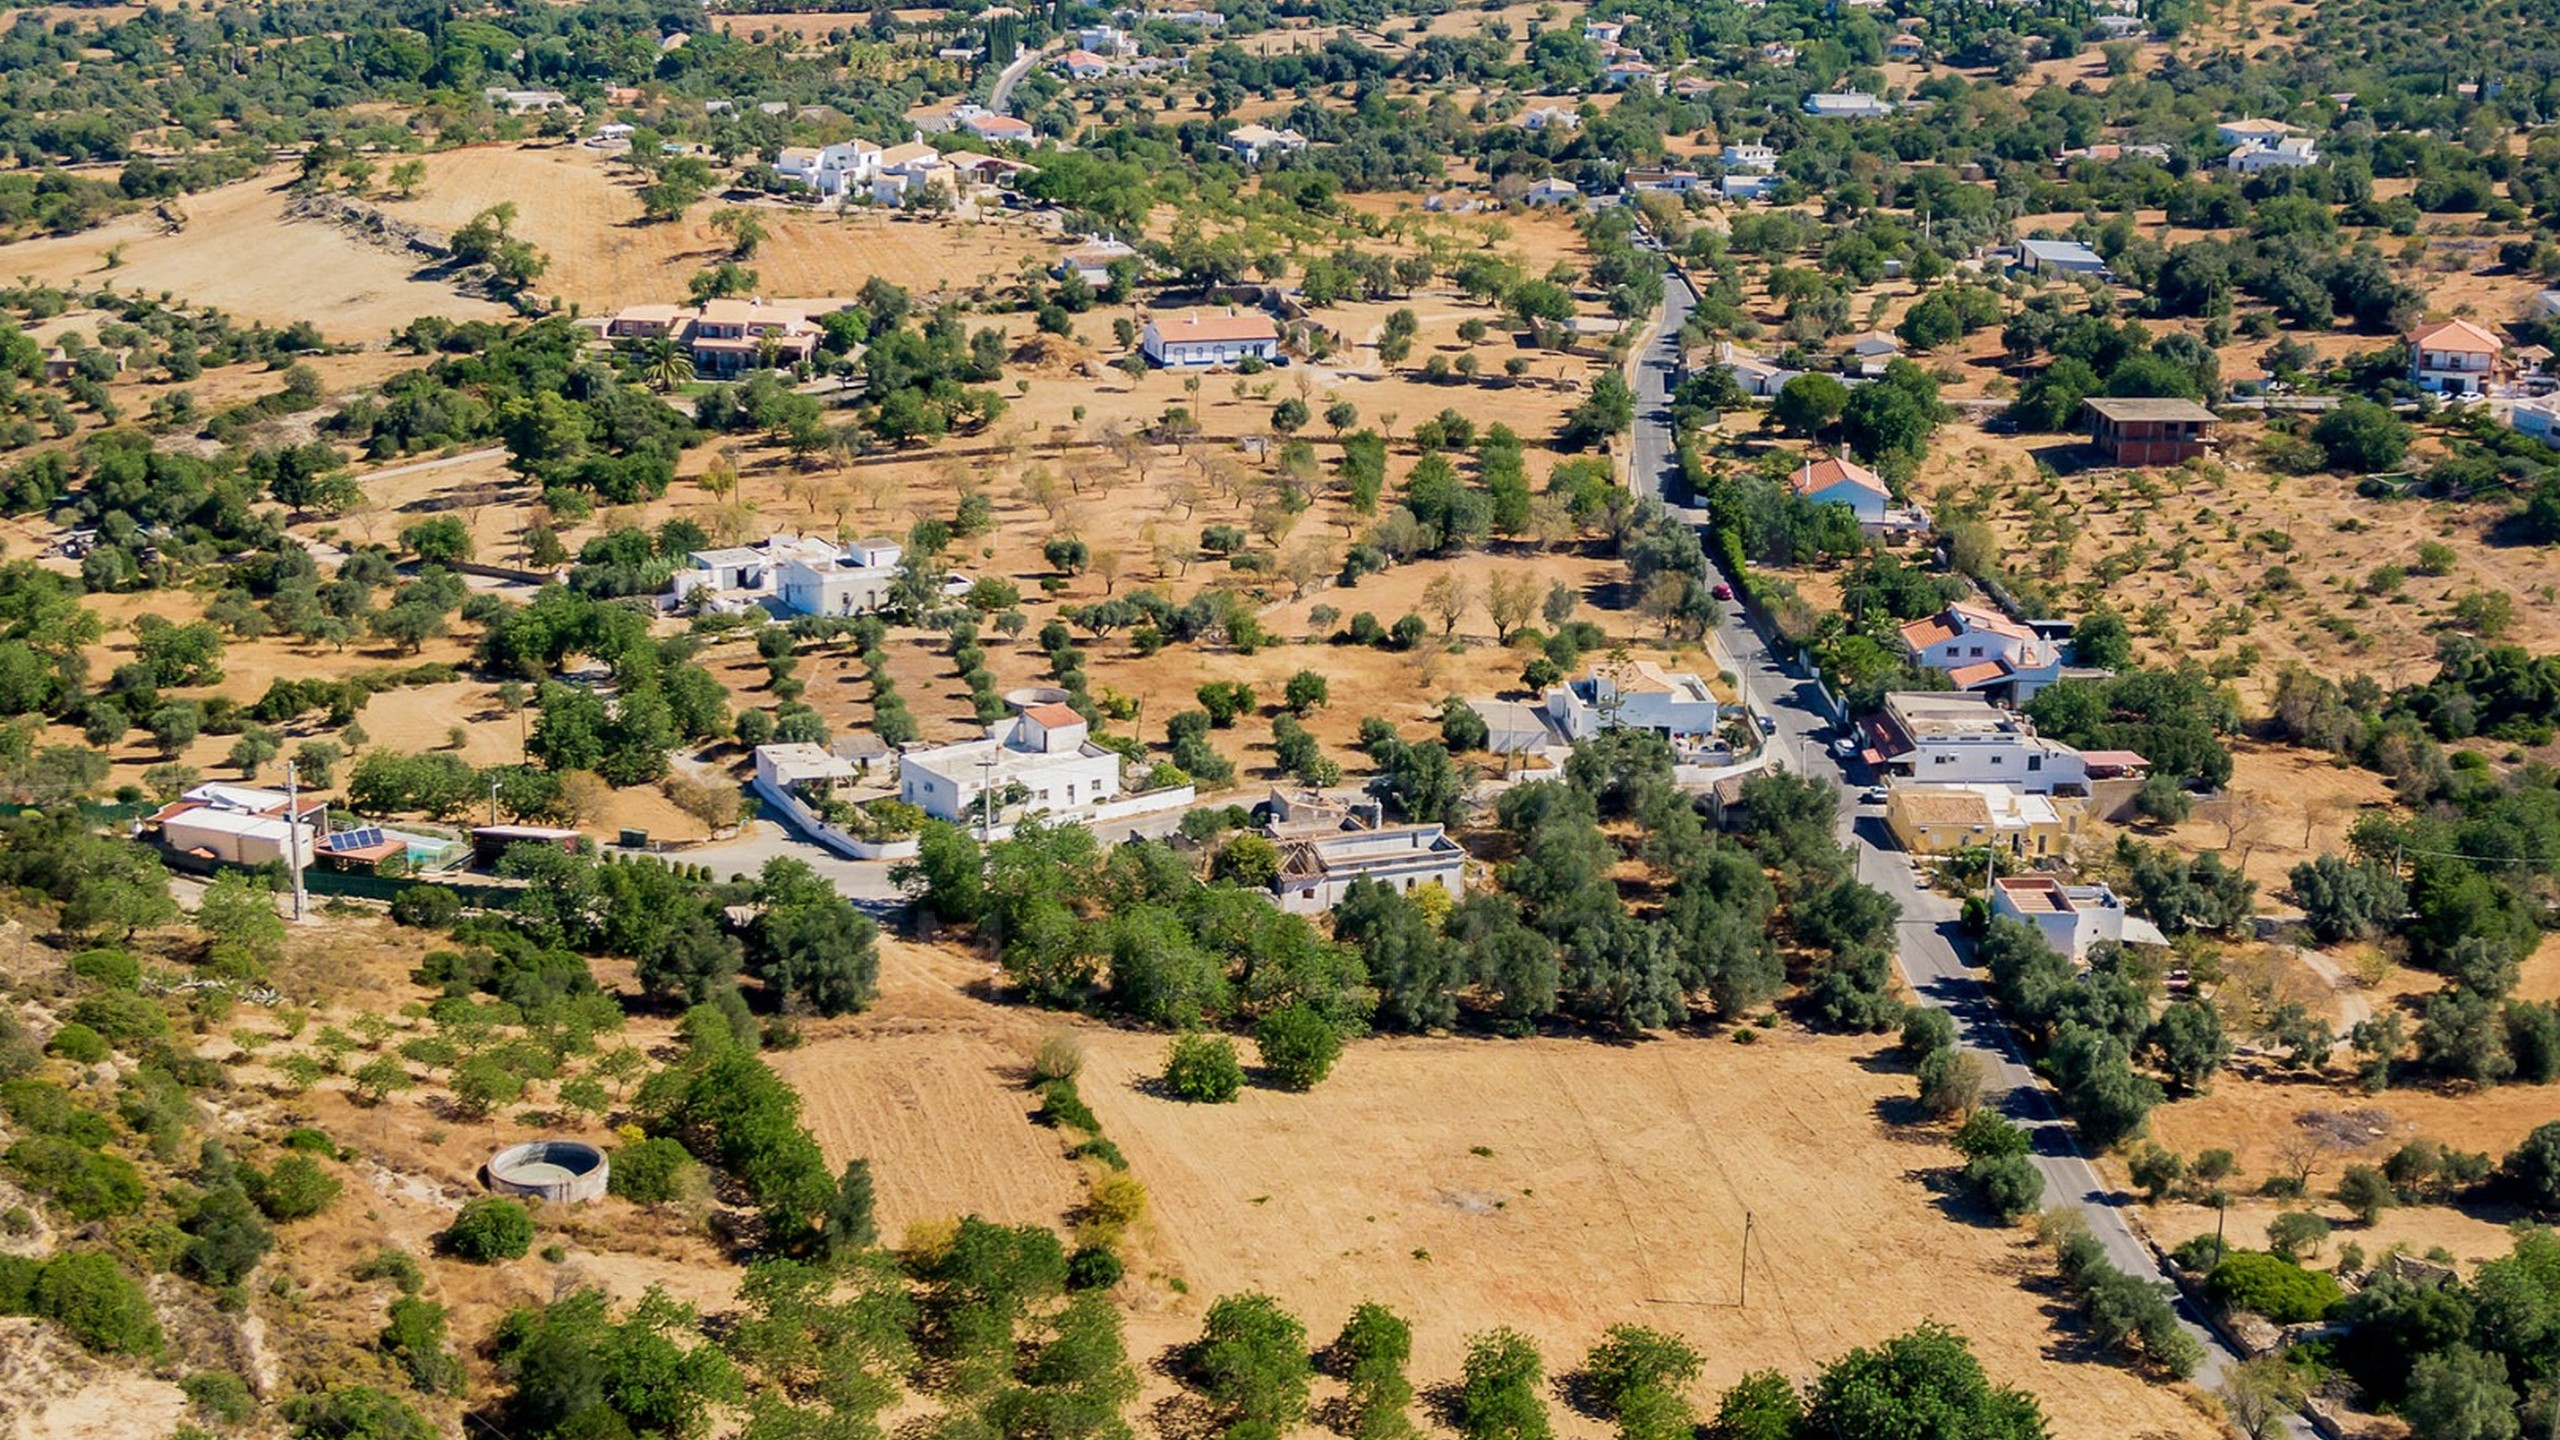 Building plot in Algarve